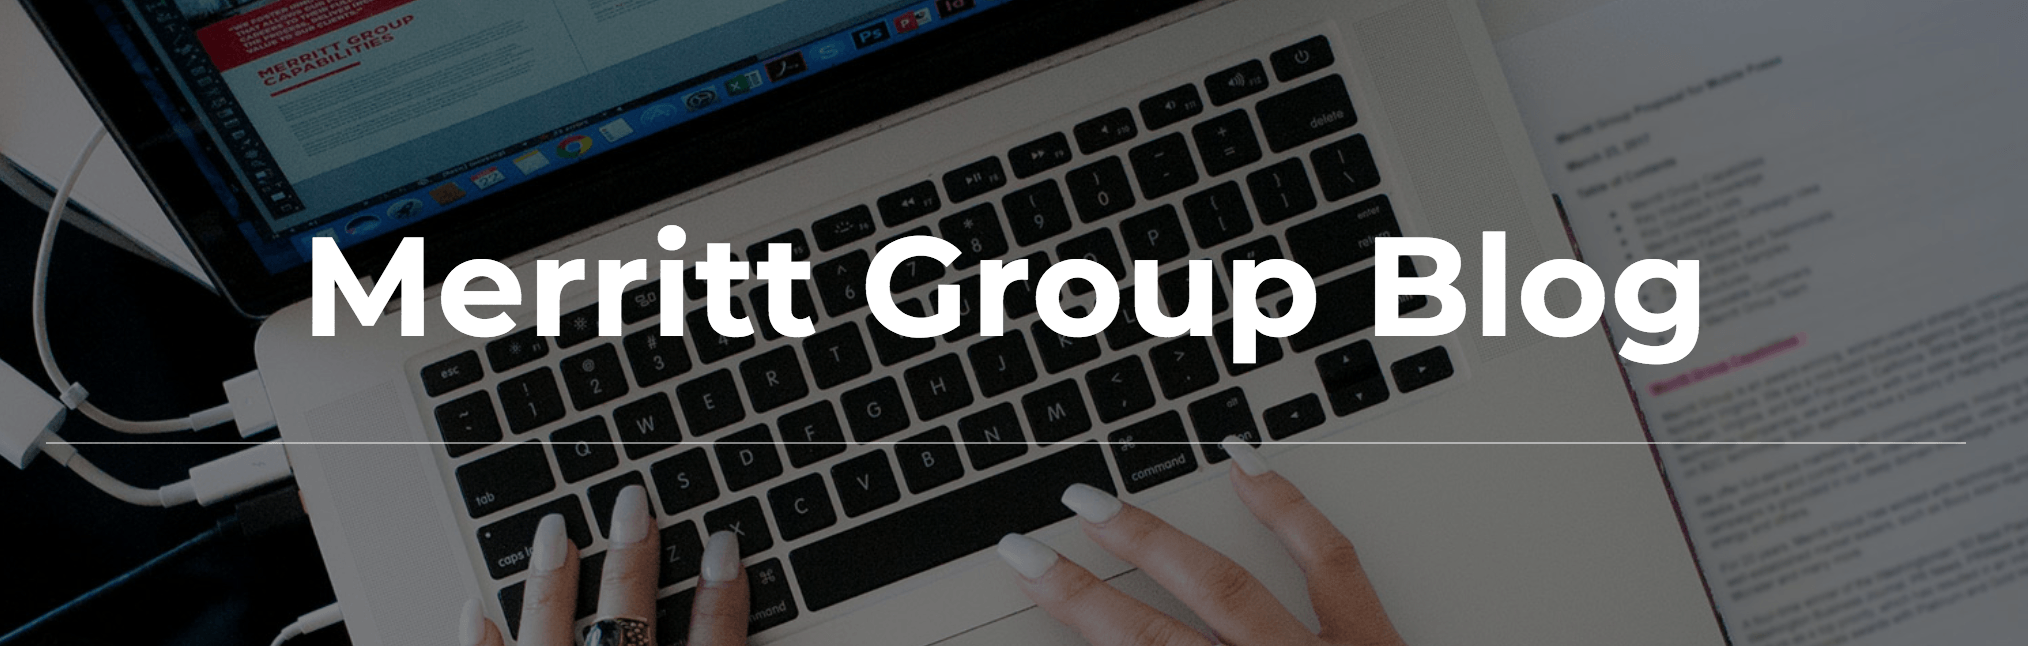 Merritt Group Blog